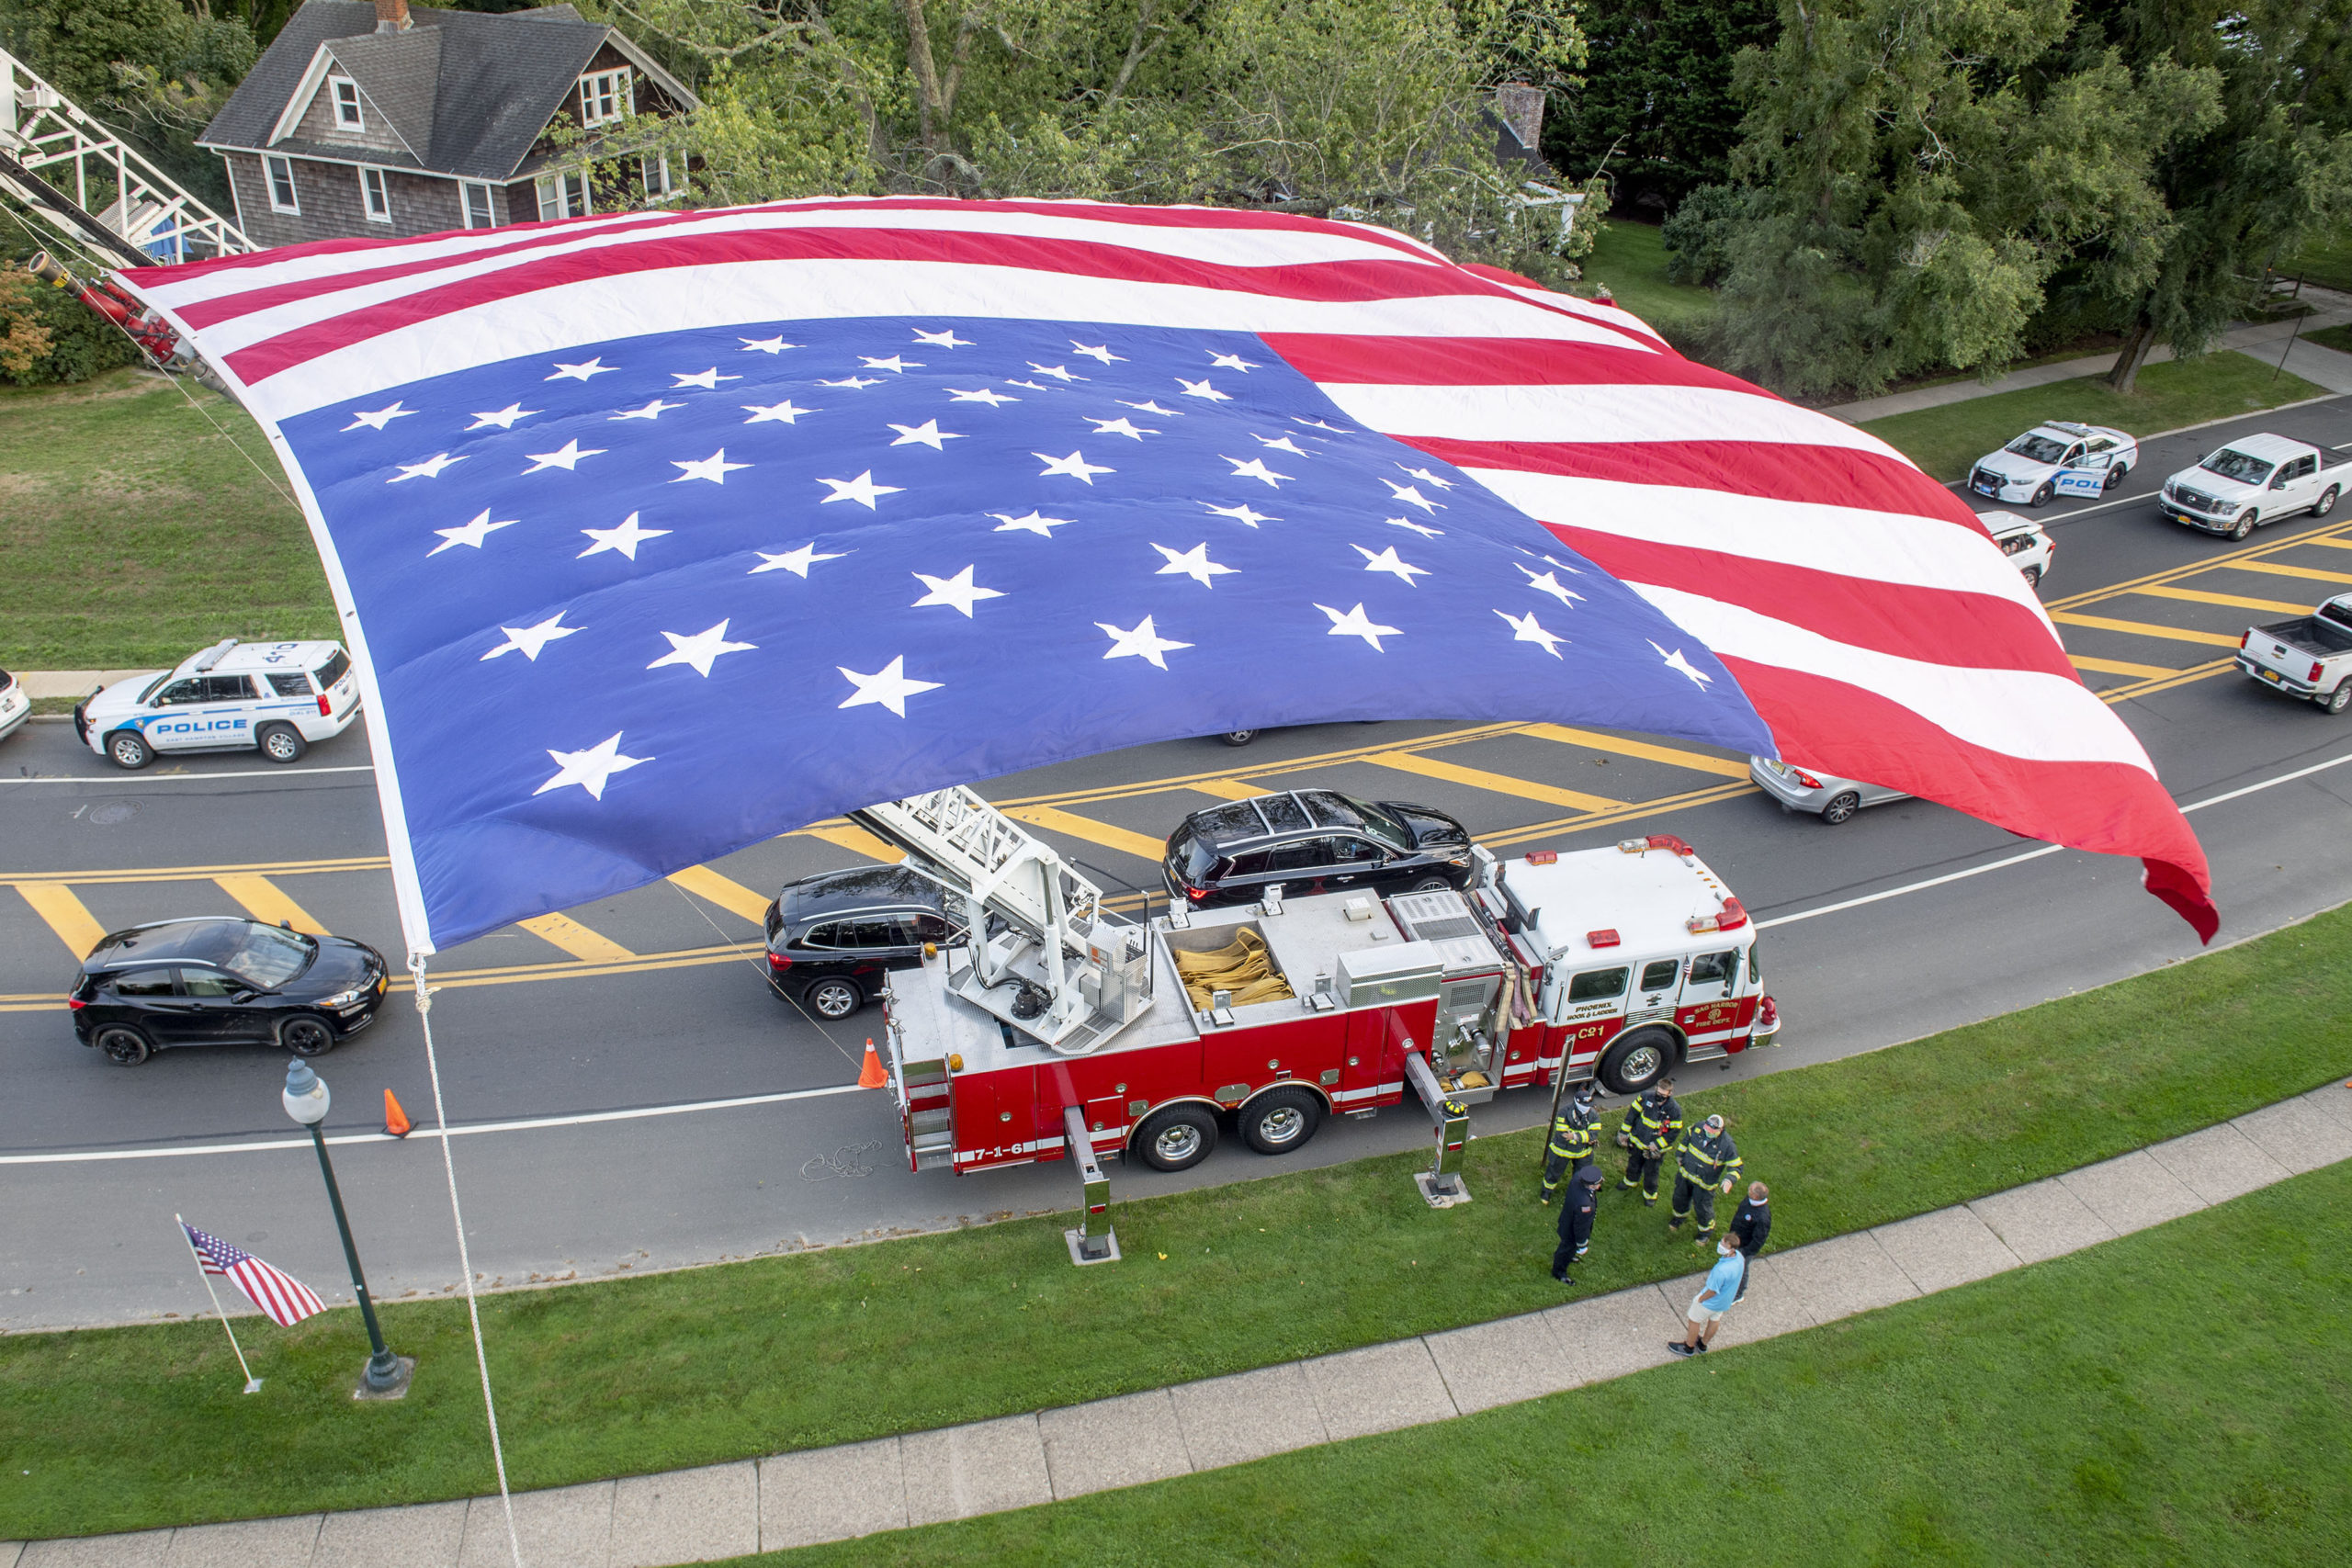 Sag Harbor firefighters gather under a large american flag hoisted by East Hampton and Sag Harbor ladder companies as members of the East End Fire, EMS and Police Departments held a memorial service at the village green in East Hampton commemorating the 19th anniversary of the September 11, 2001 terrorist attacks.